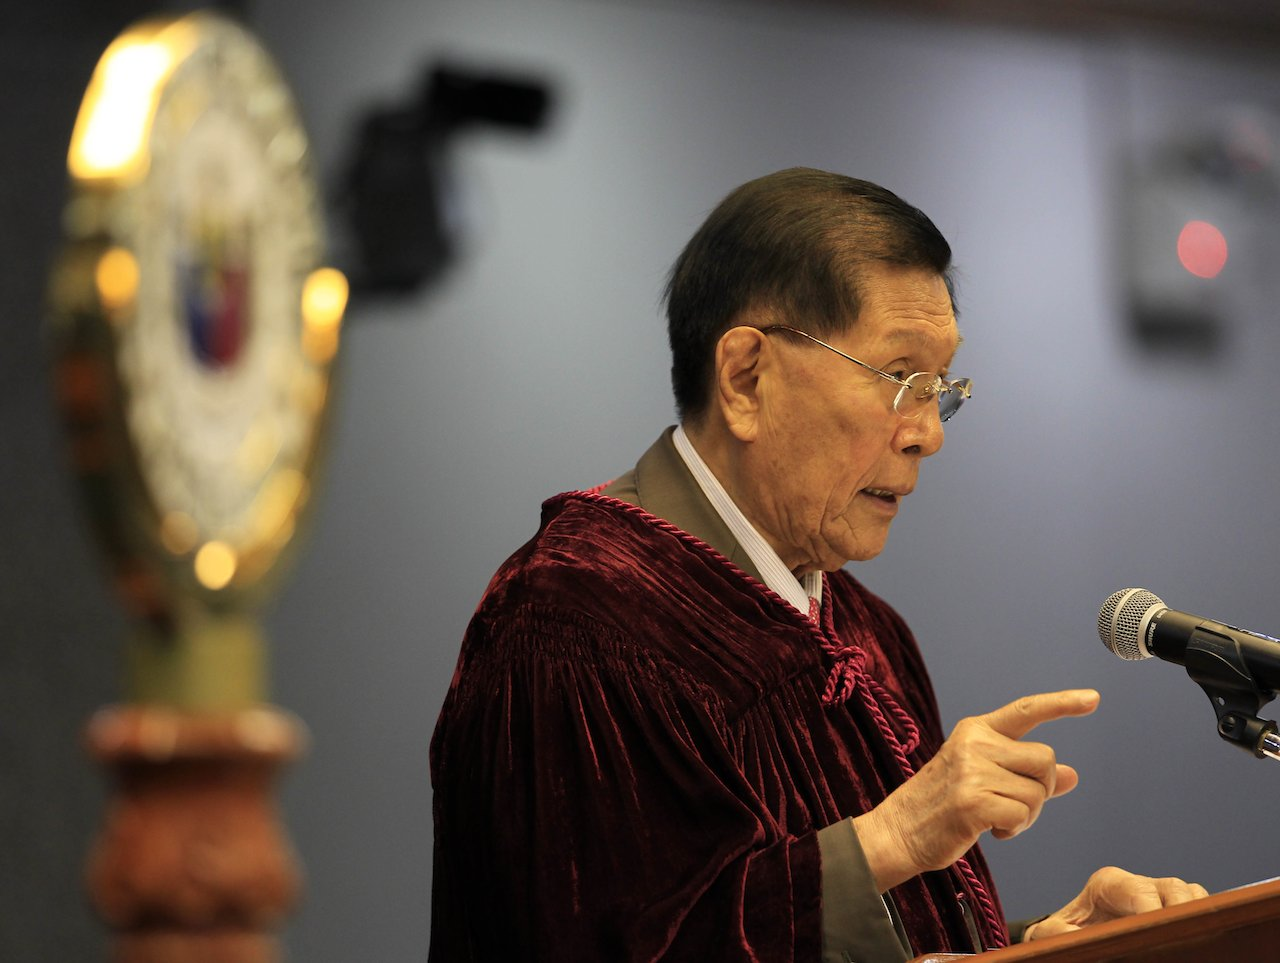 Enrile, <b> In the midst of a pandemic, Enrile&#8217;s immortality continues to amaze </b>